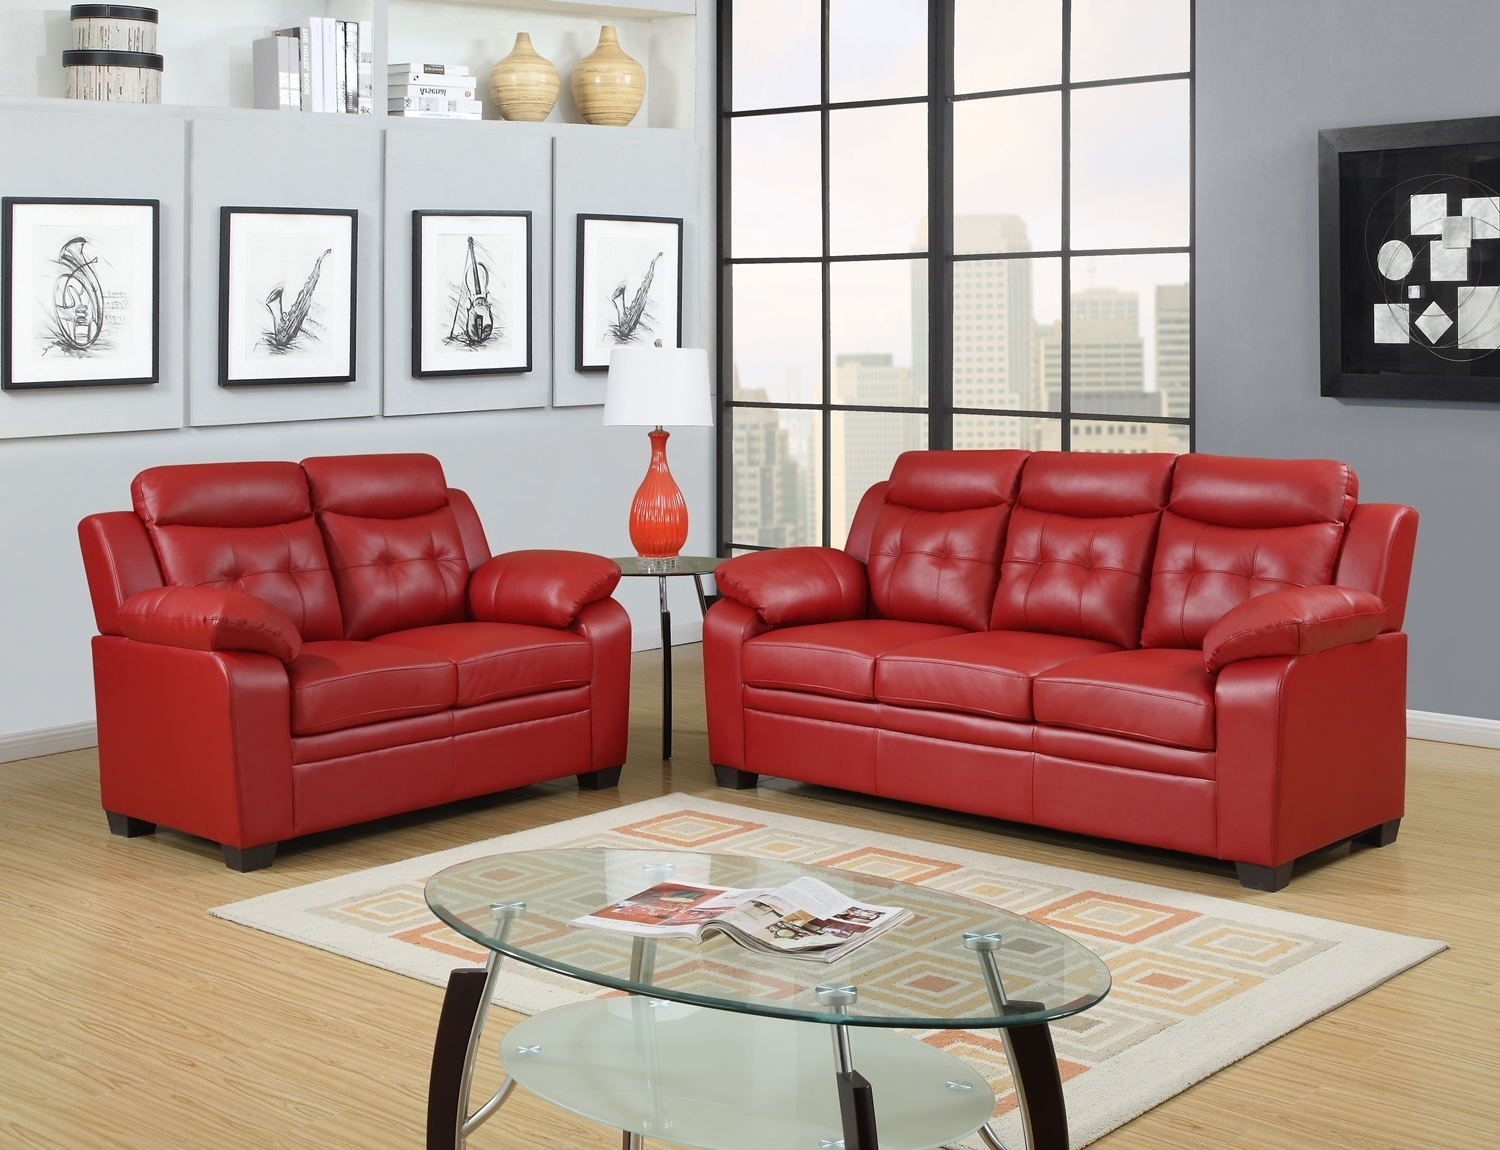 Cheap Red Leather Sofa - Radiovannes pertaining to Red Leather Couches (Image 1 of 15)